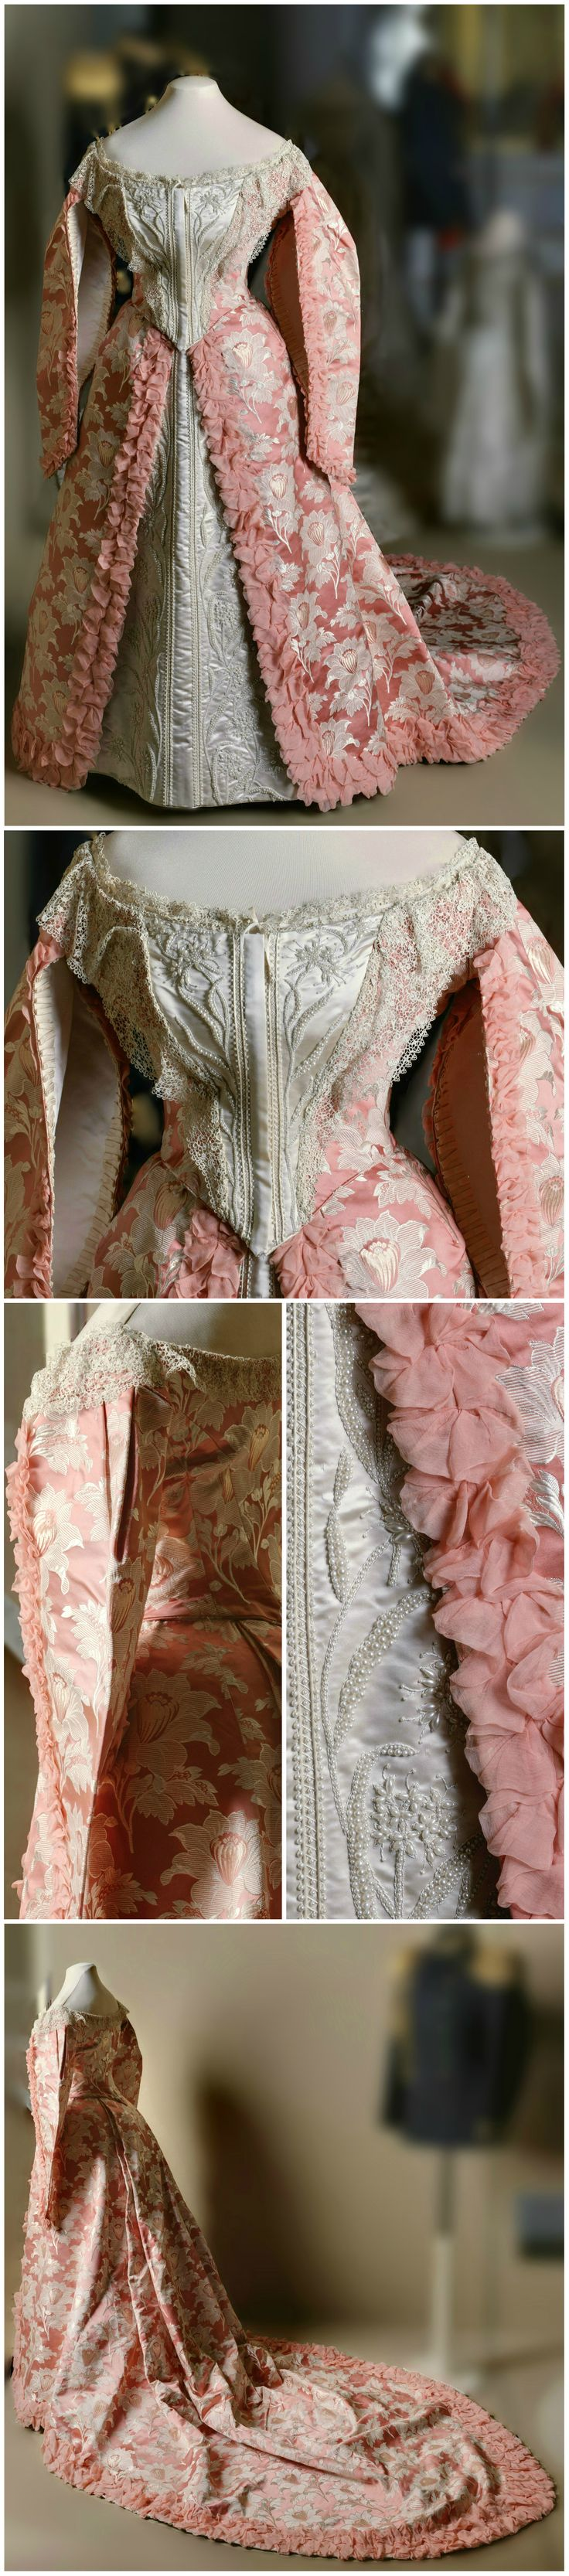 Ceremonial court dress, St. Petersburg, Russia, late 19th to early 20th century. Silk, satin, artificial pearls. State Hermitage Museum (link: http://hermitage.guide/costume/costume1.html)